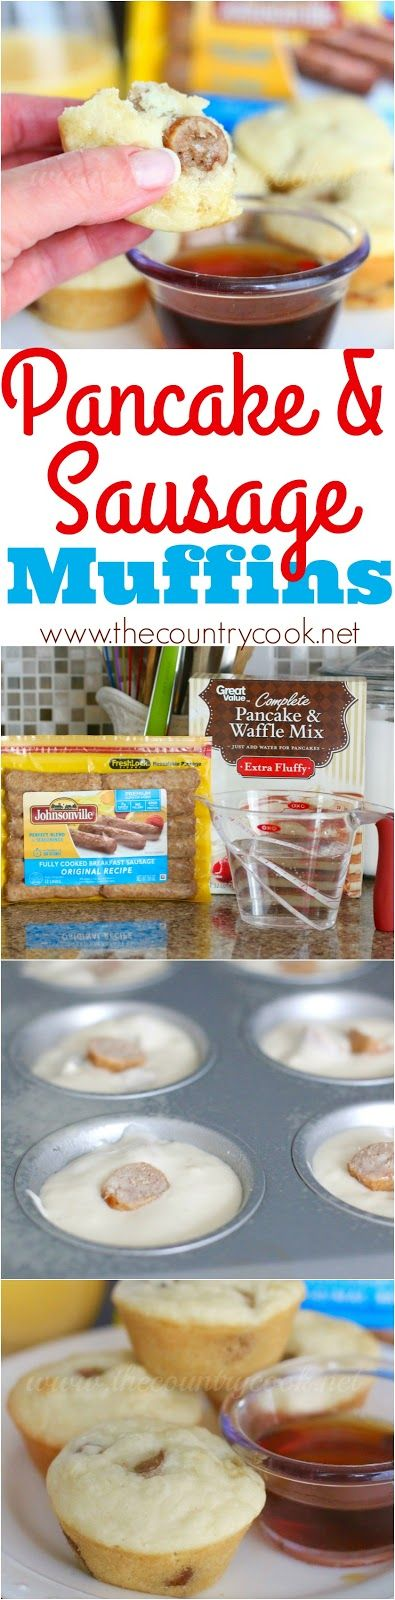 The Country Cook: Pancake & Sausage Muffins